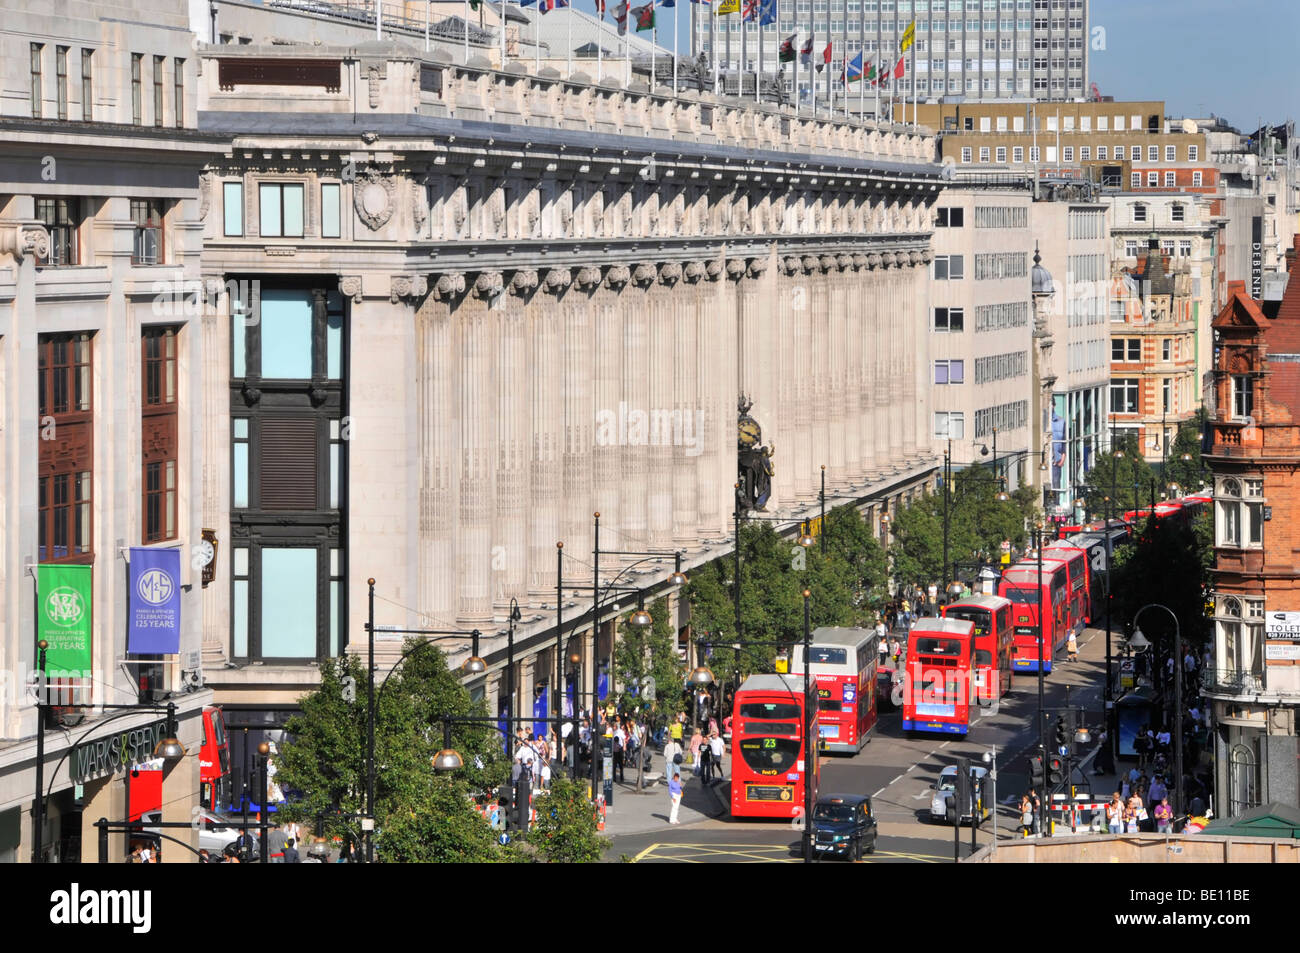 Oxford Street frontage of Selfridges department store with long queue of double decker red London buses Stock Photo